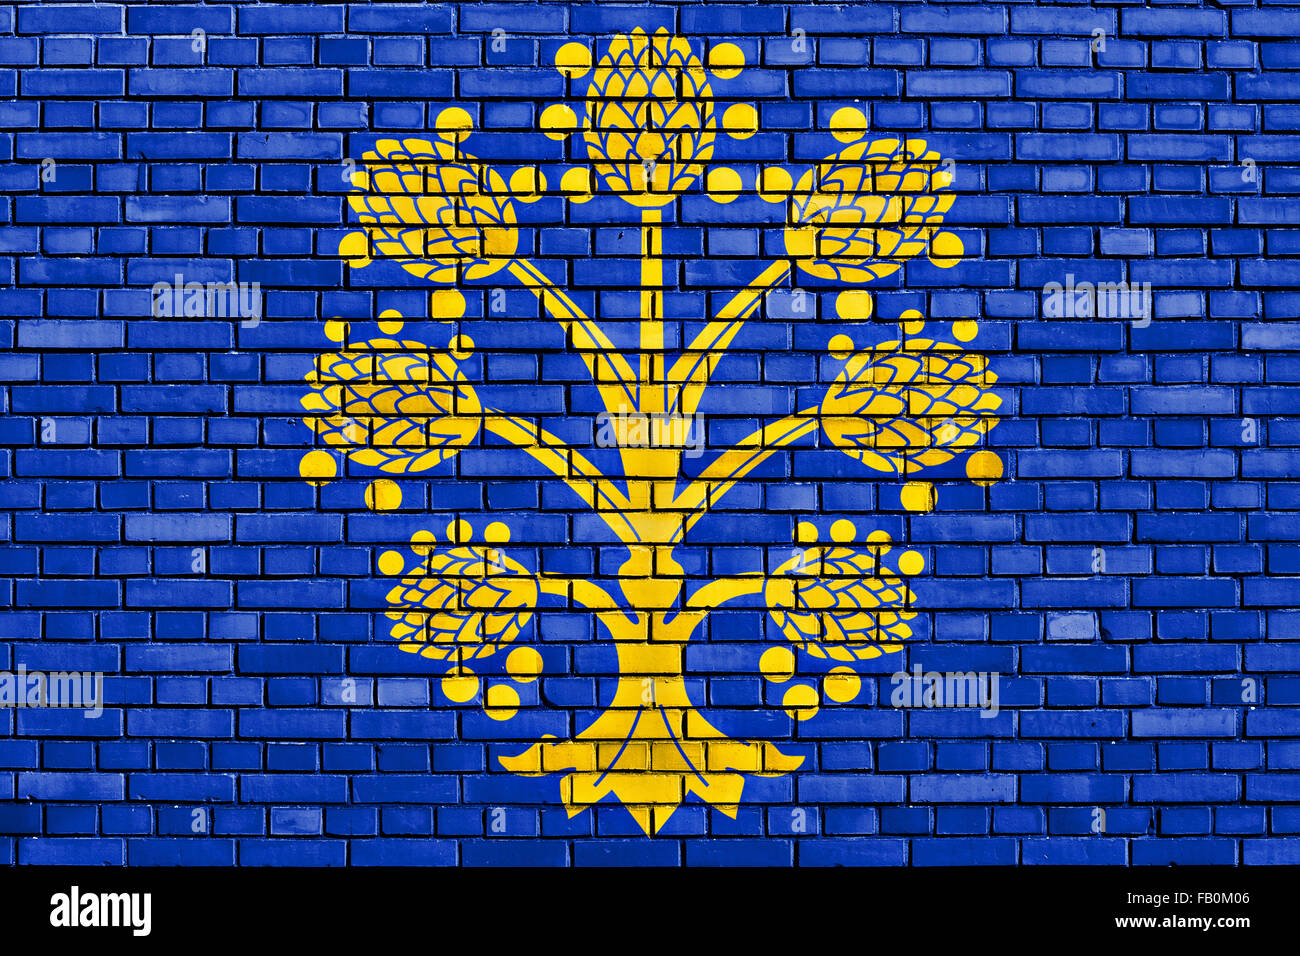 flag of Appleby-in-Westmorland painted on brick wall - Stock Image